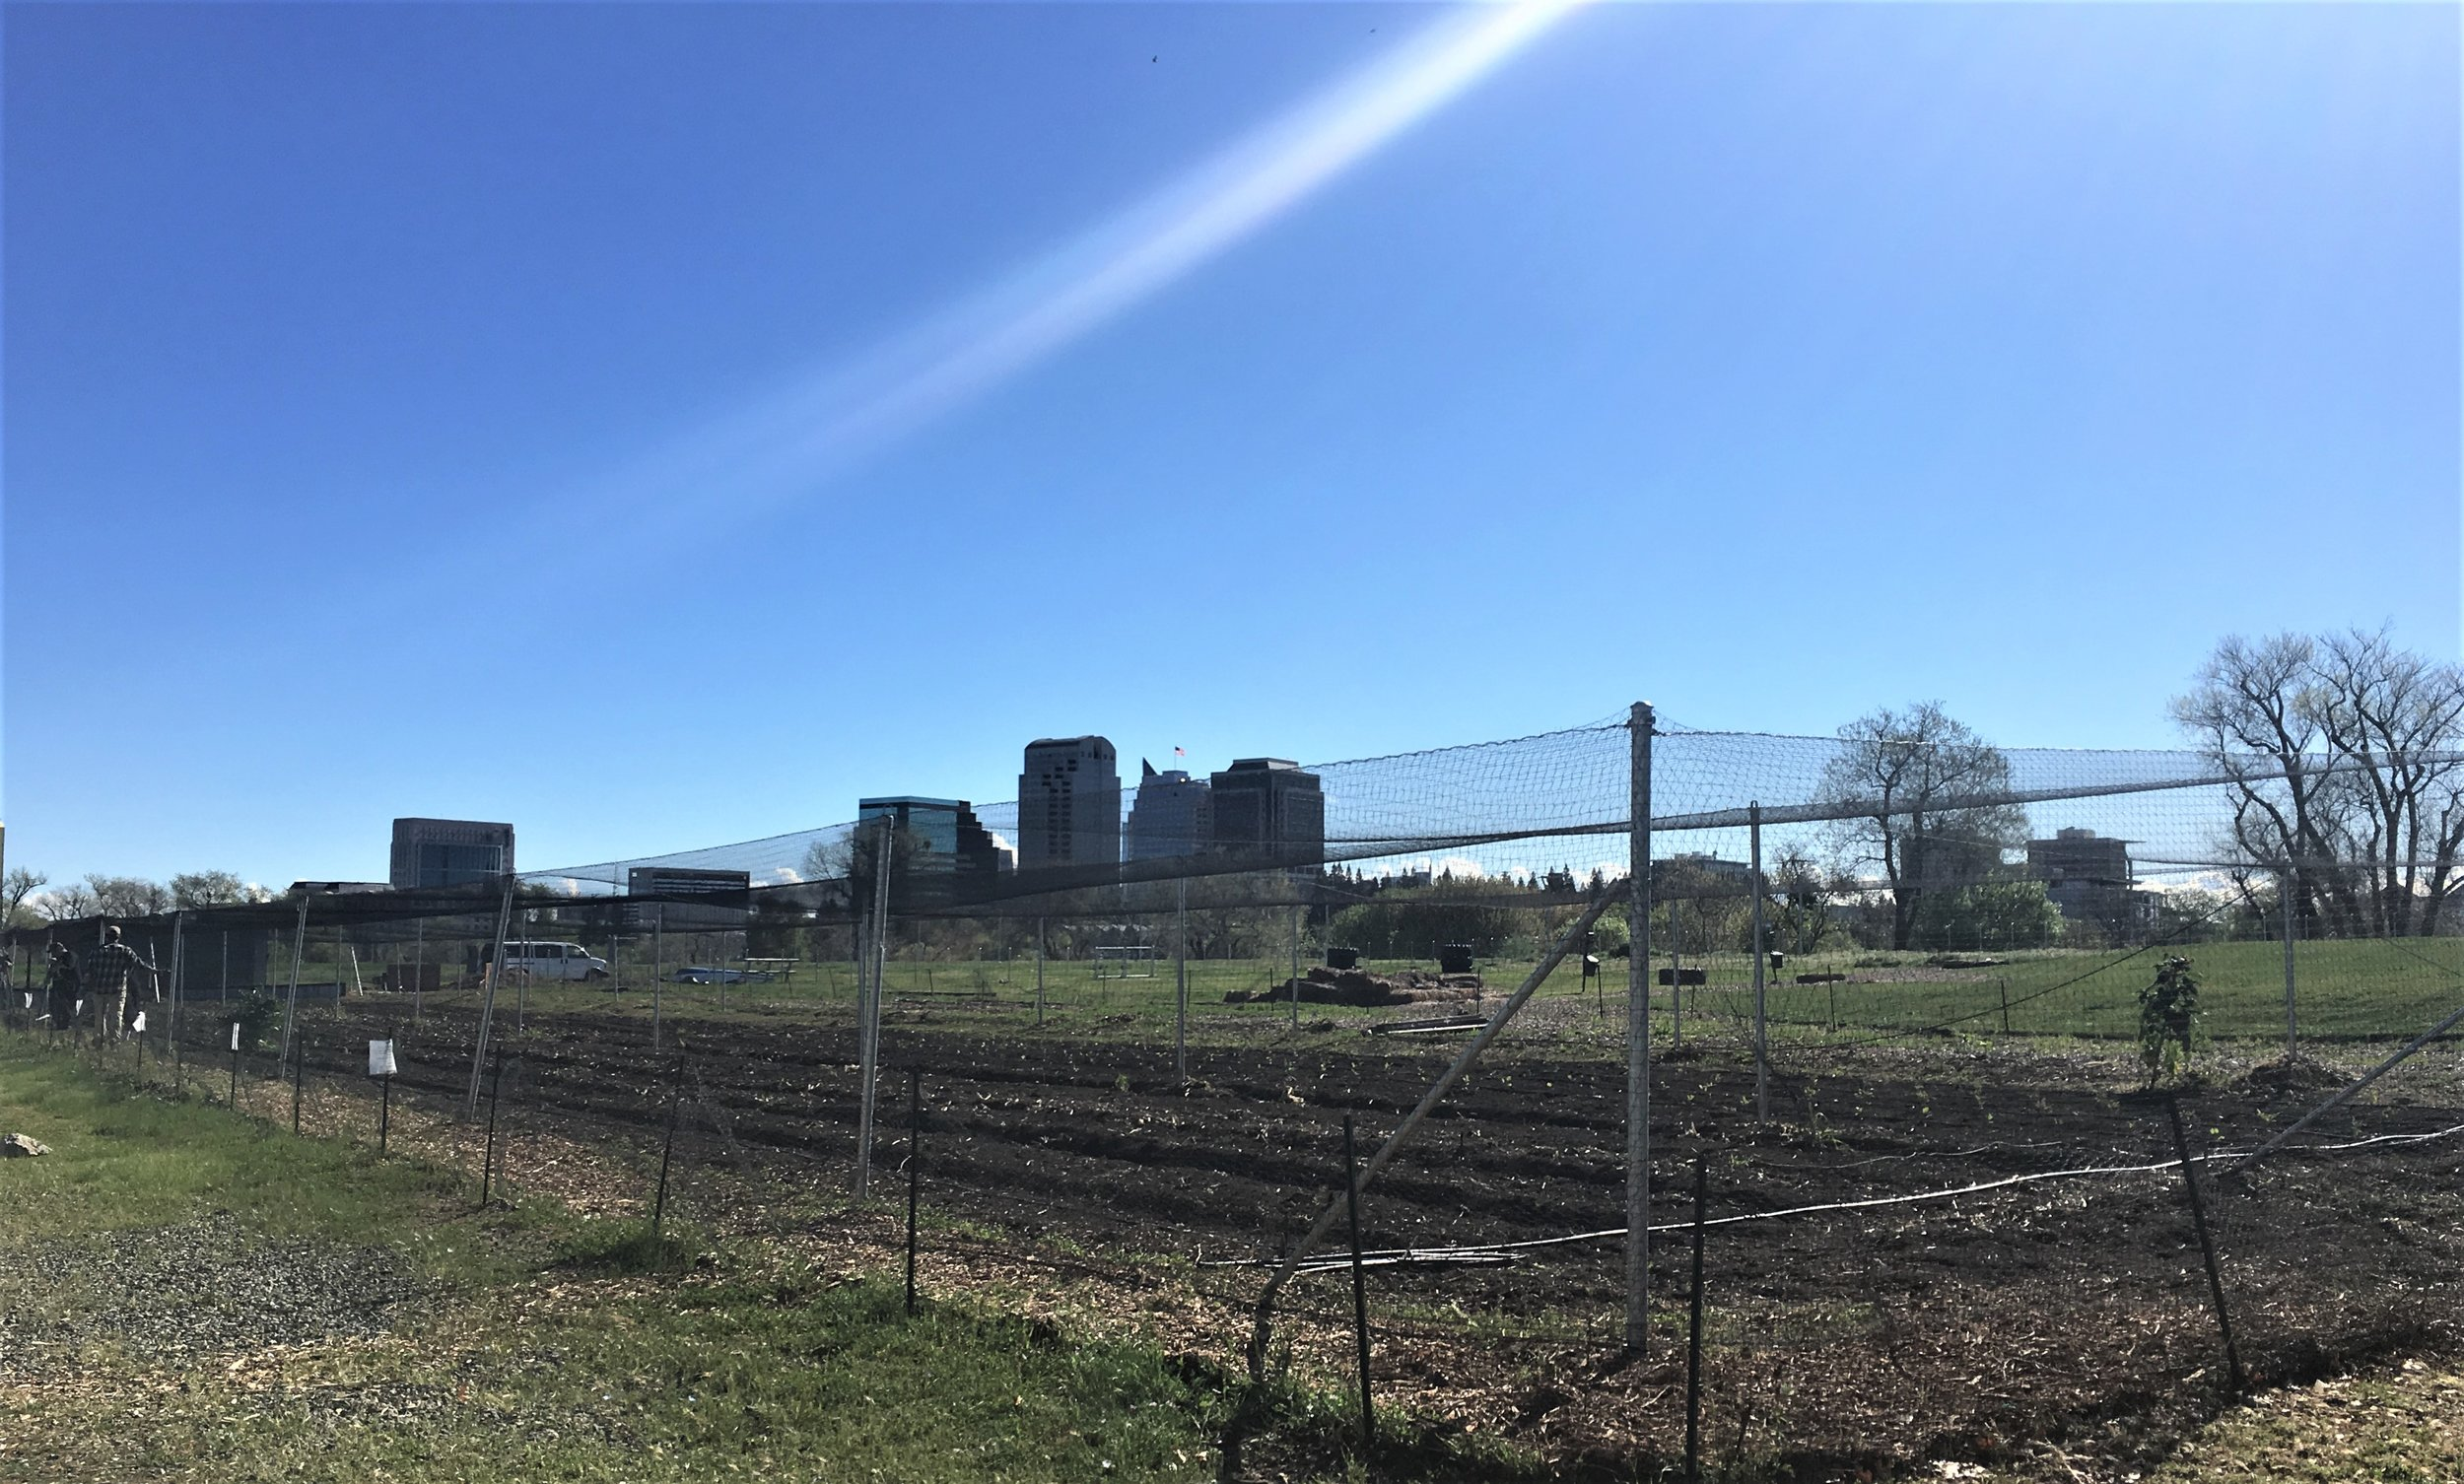 A two-acre urban farm on the riverfront. West Sacramento has five urban farms, one of the most robust programs in the country.